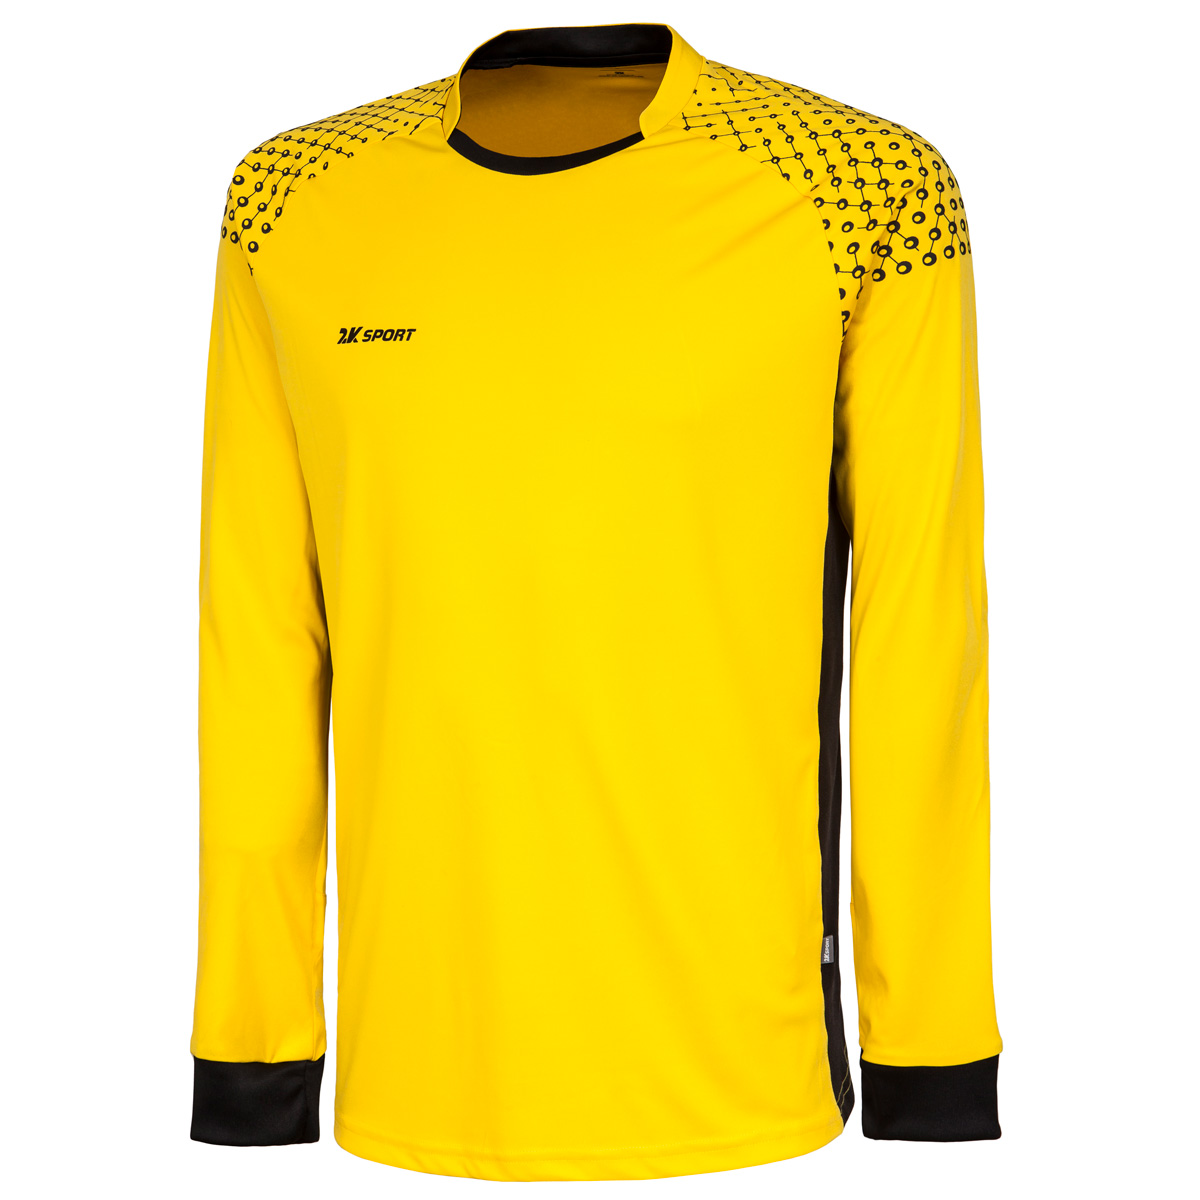 2K SPORT KEEPER YELLOW/BLACK